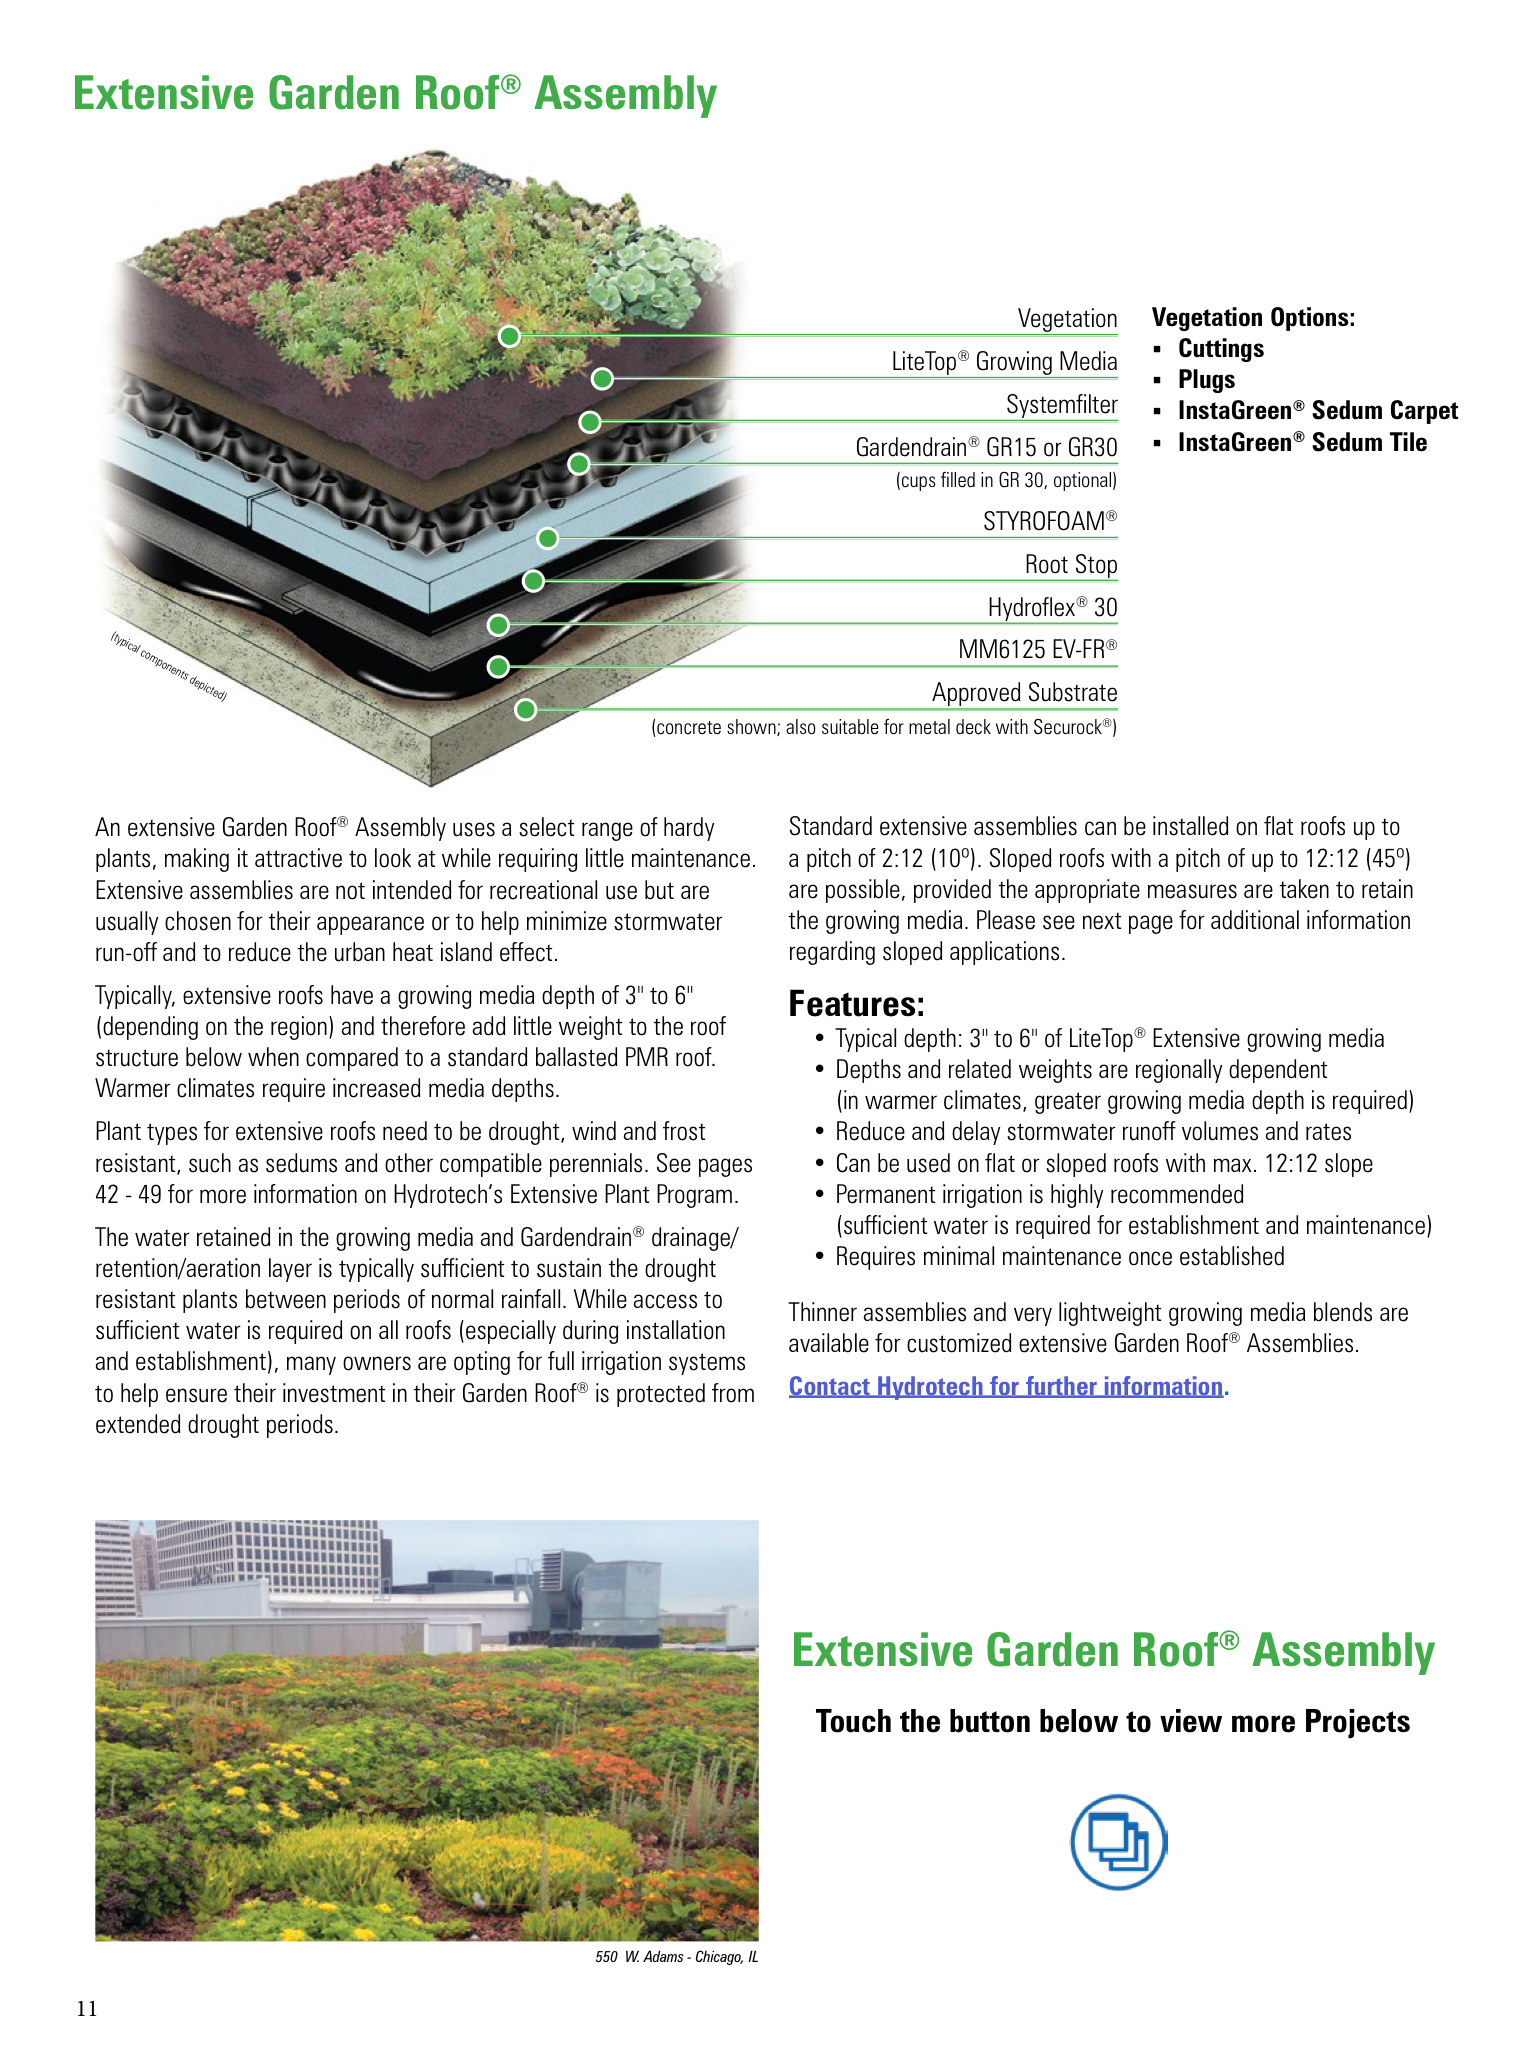 American Hydrotech Launches Ipad App For Planning Vegetative Roofs Larsono Brien Pressroom